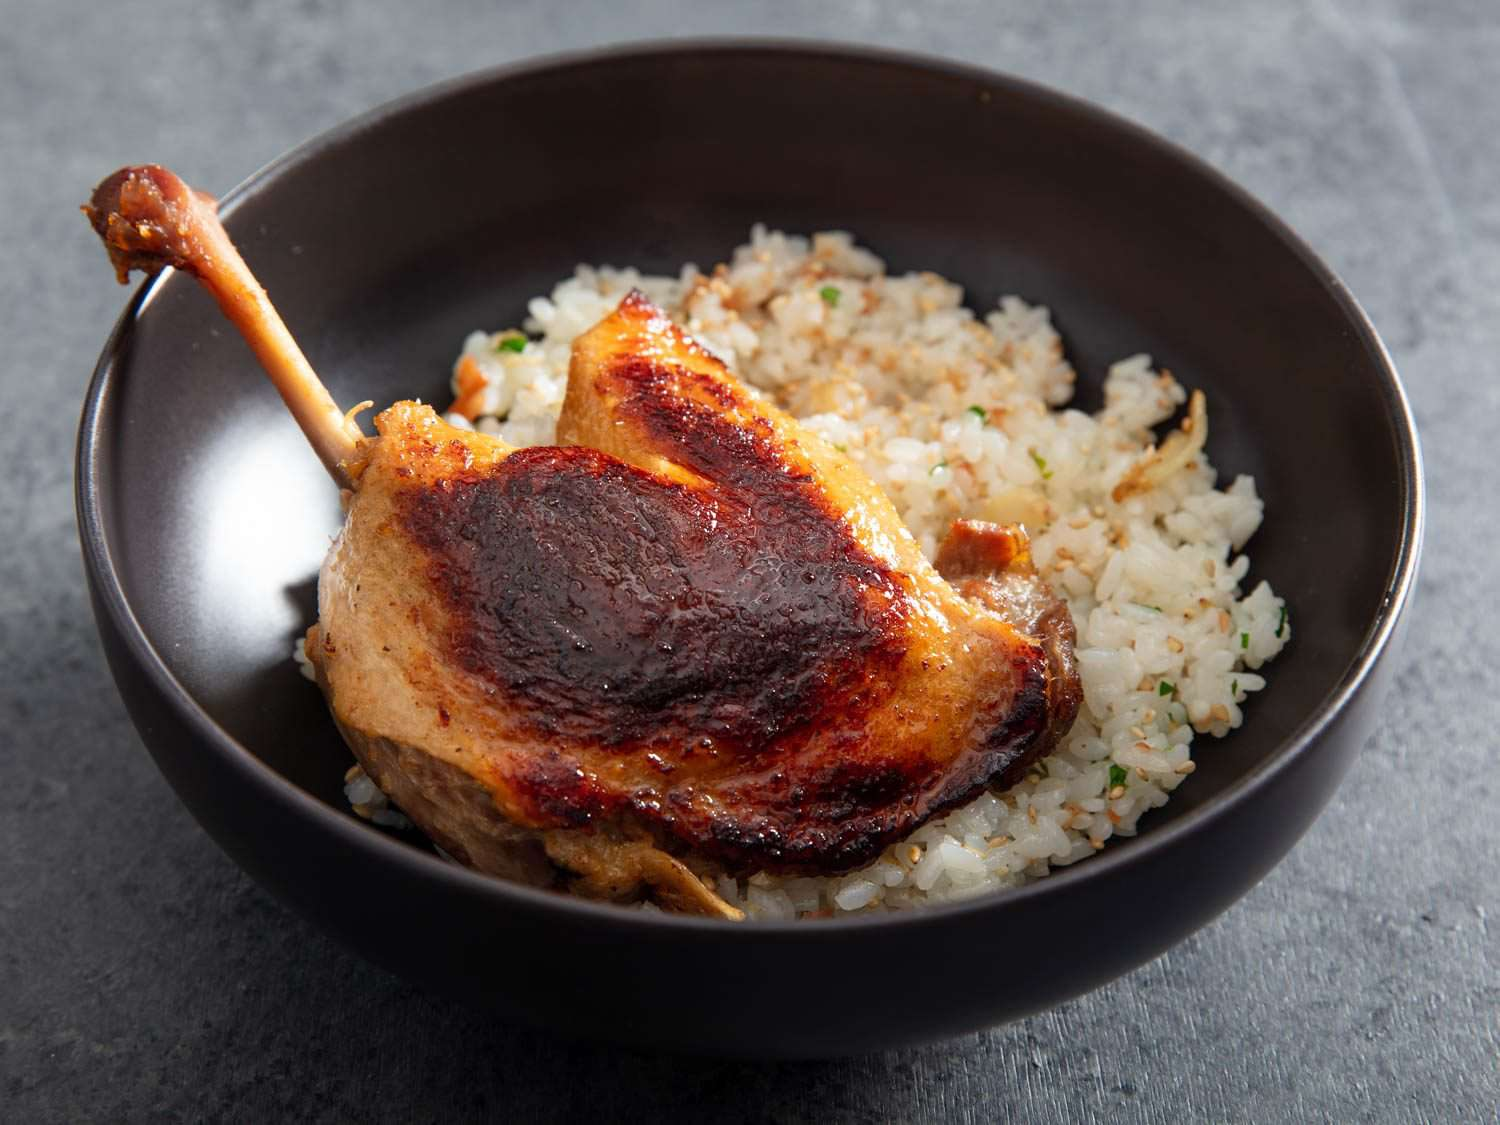 Closeup side view of a crisped koji confit duck leg in a bowl with rice.